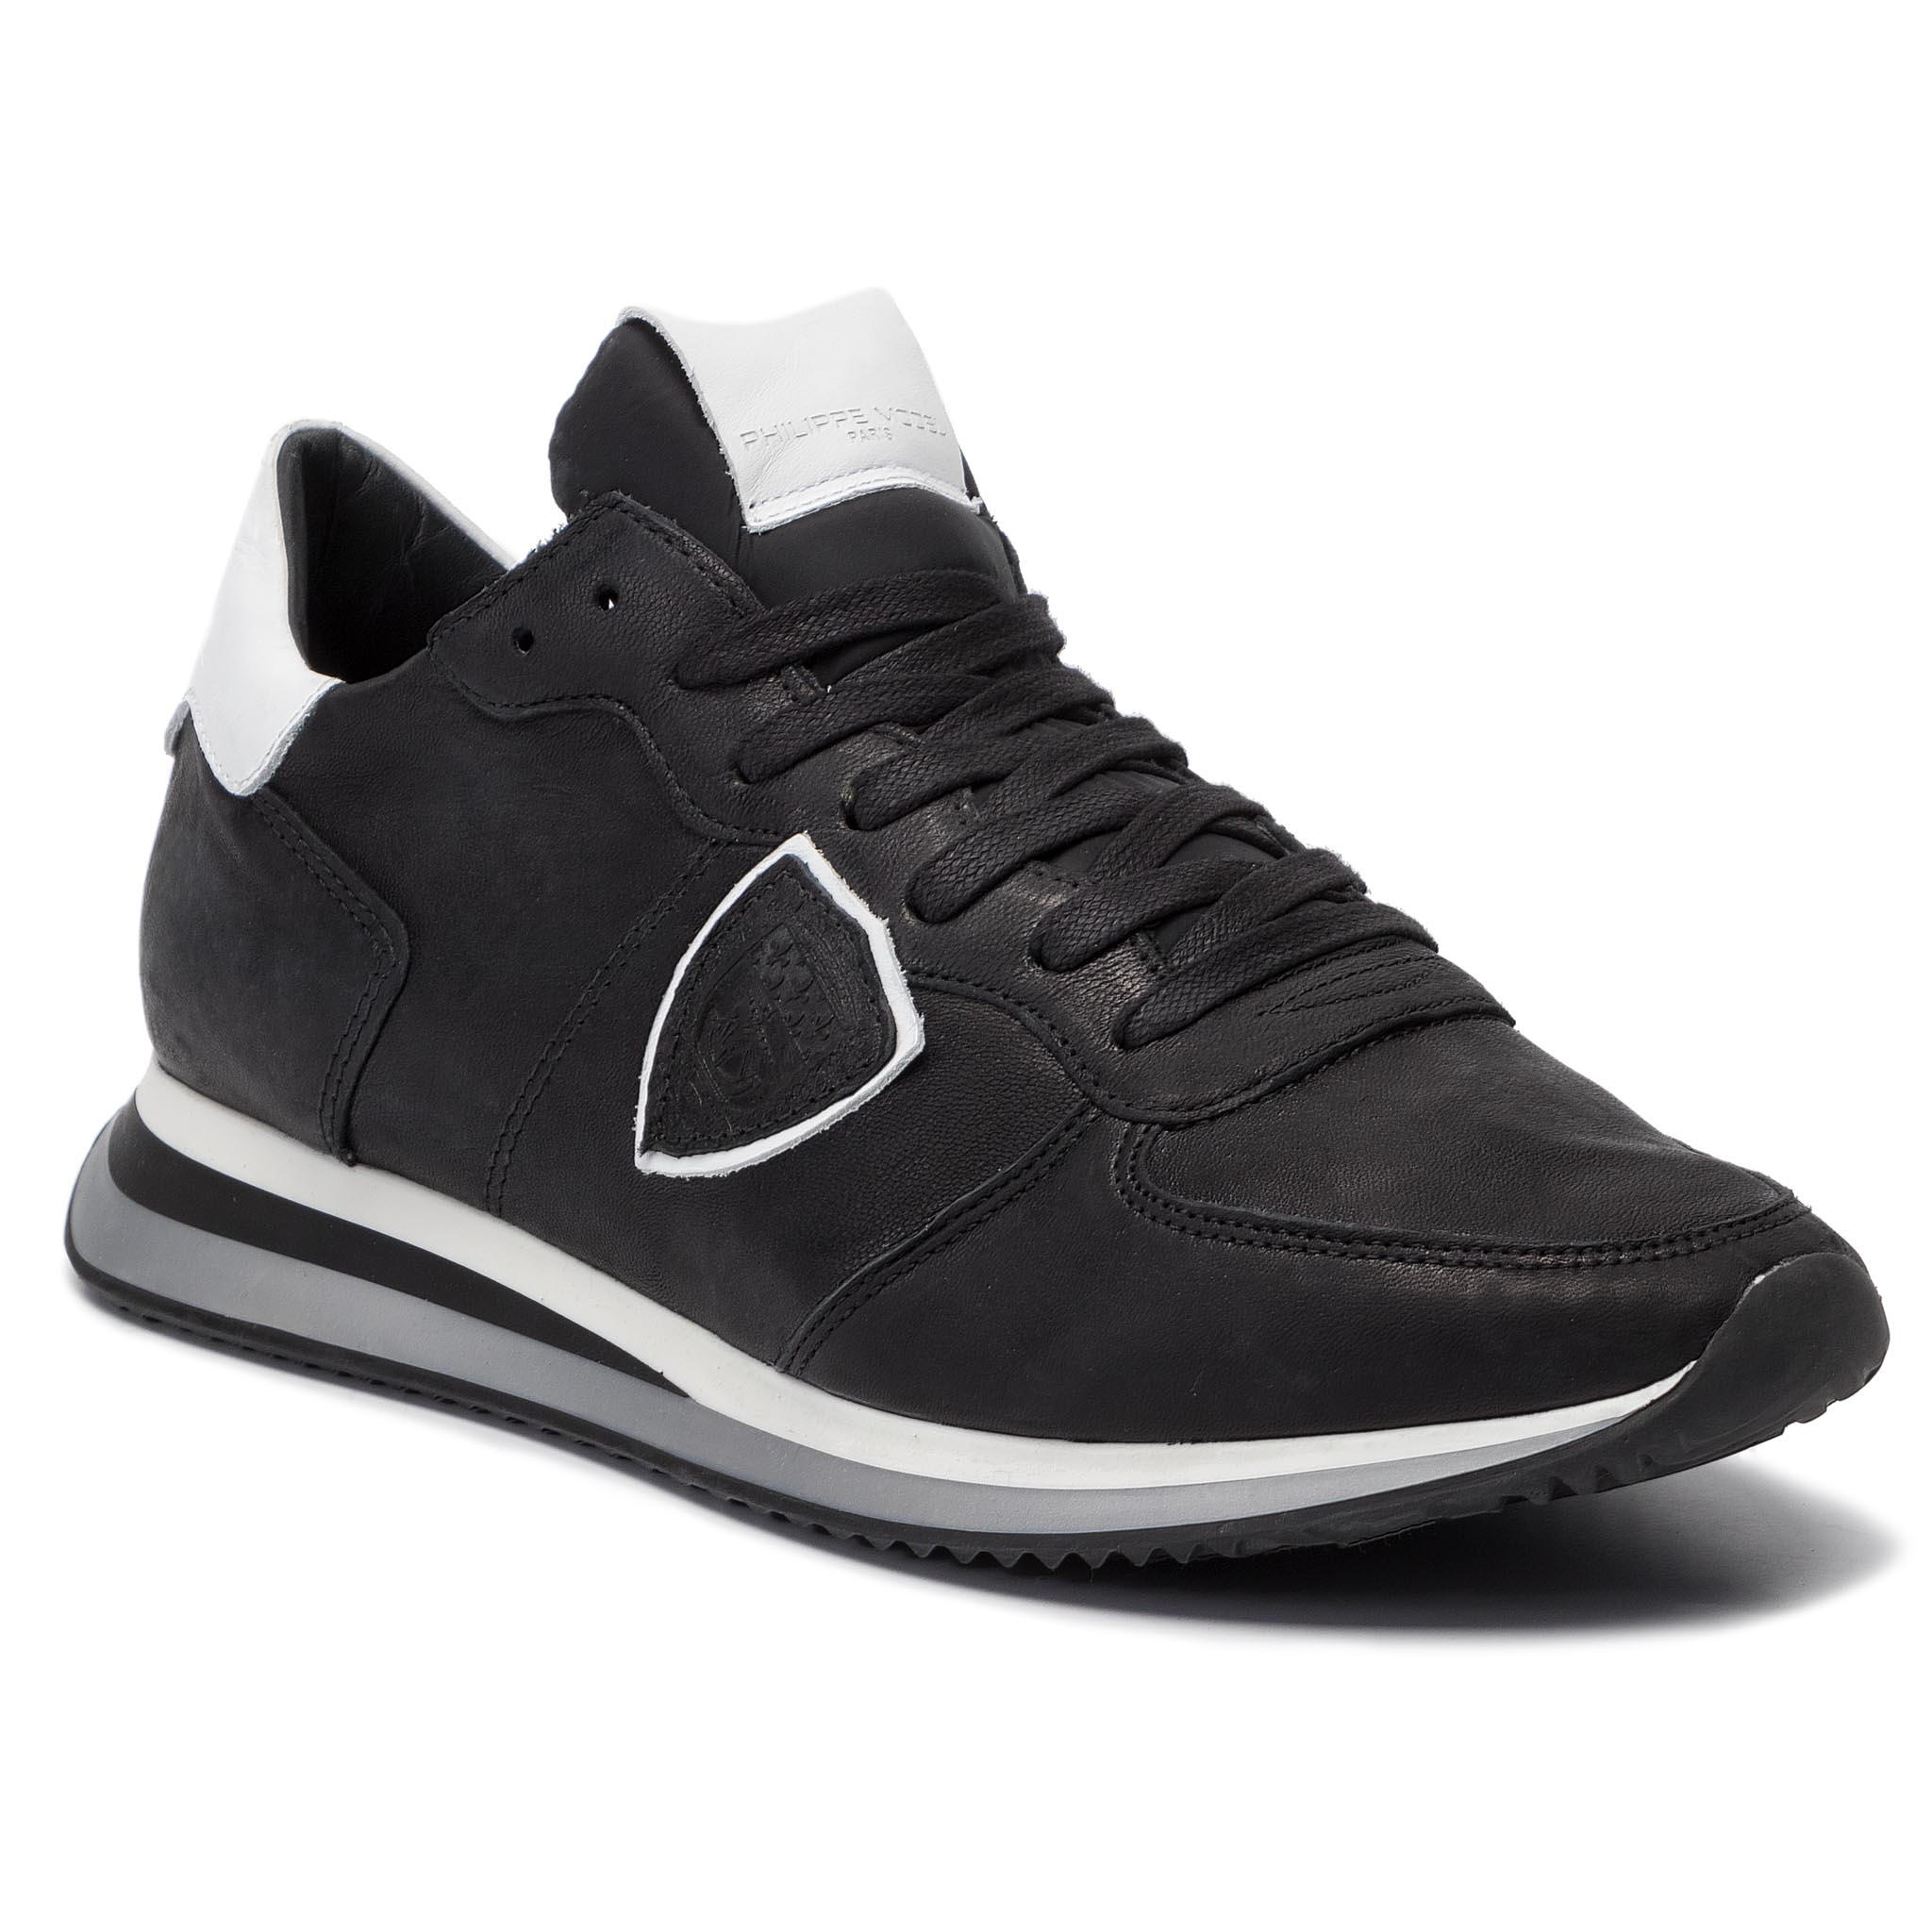 Sneakers PHILIPPE MODEL - Trpx TZLU WW08 Noir